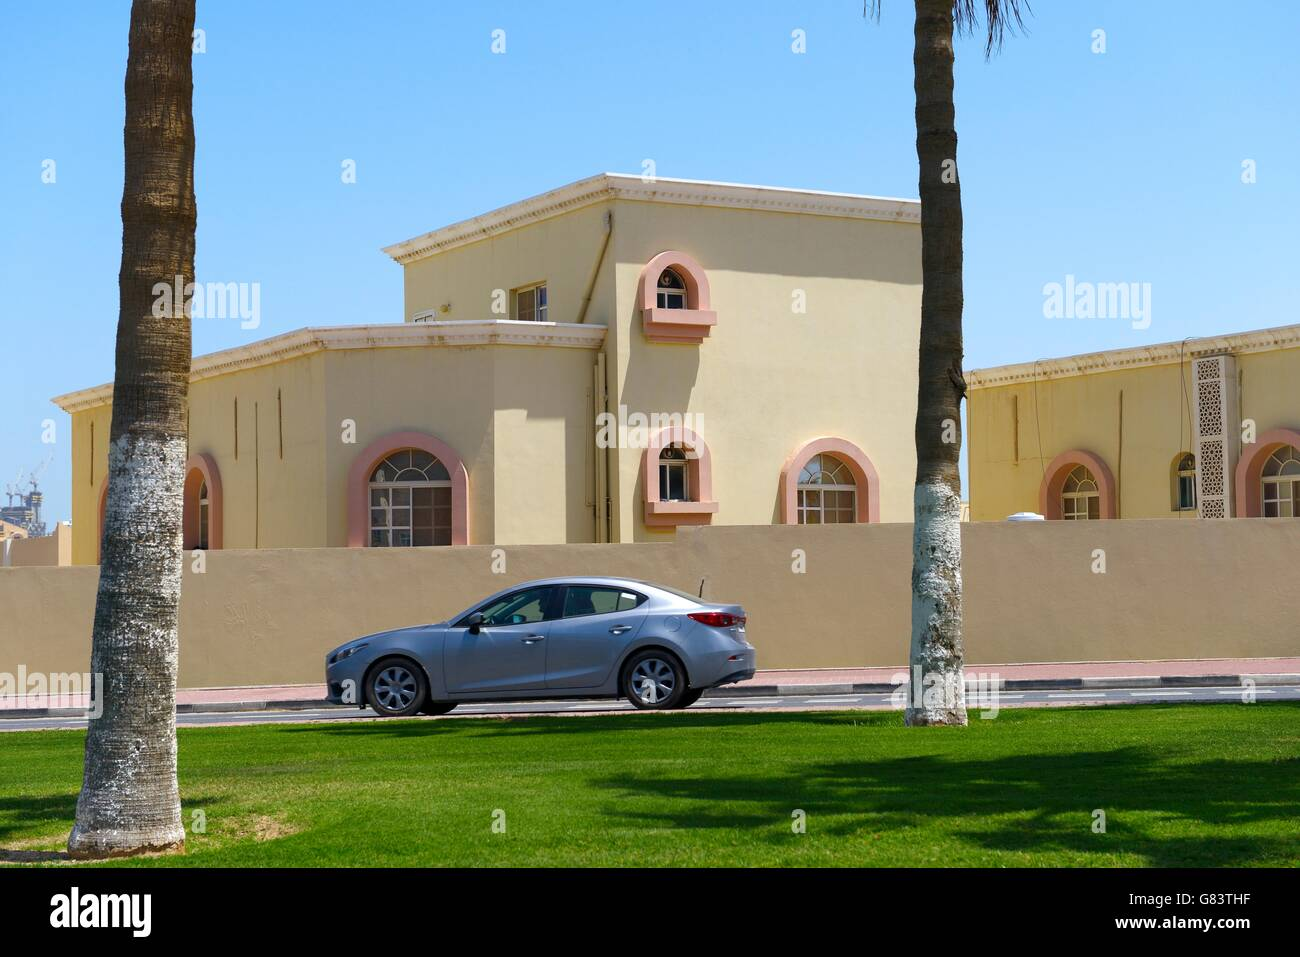 Rapidly developing new city of Lusail, Qatar. One of many private residential homes houses apartments in the West Stock Photo